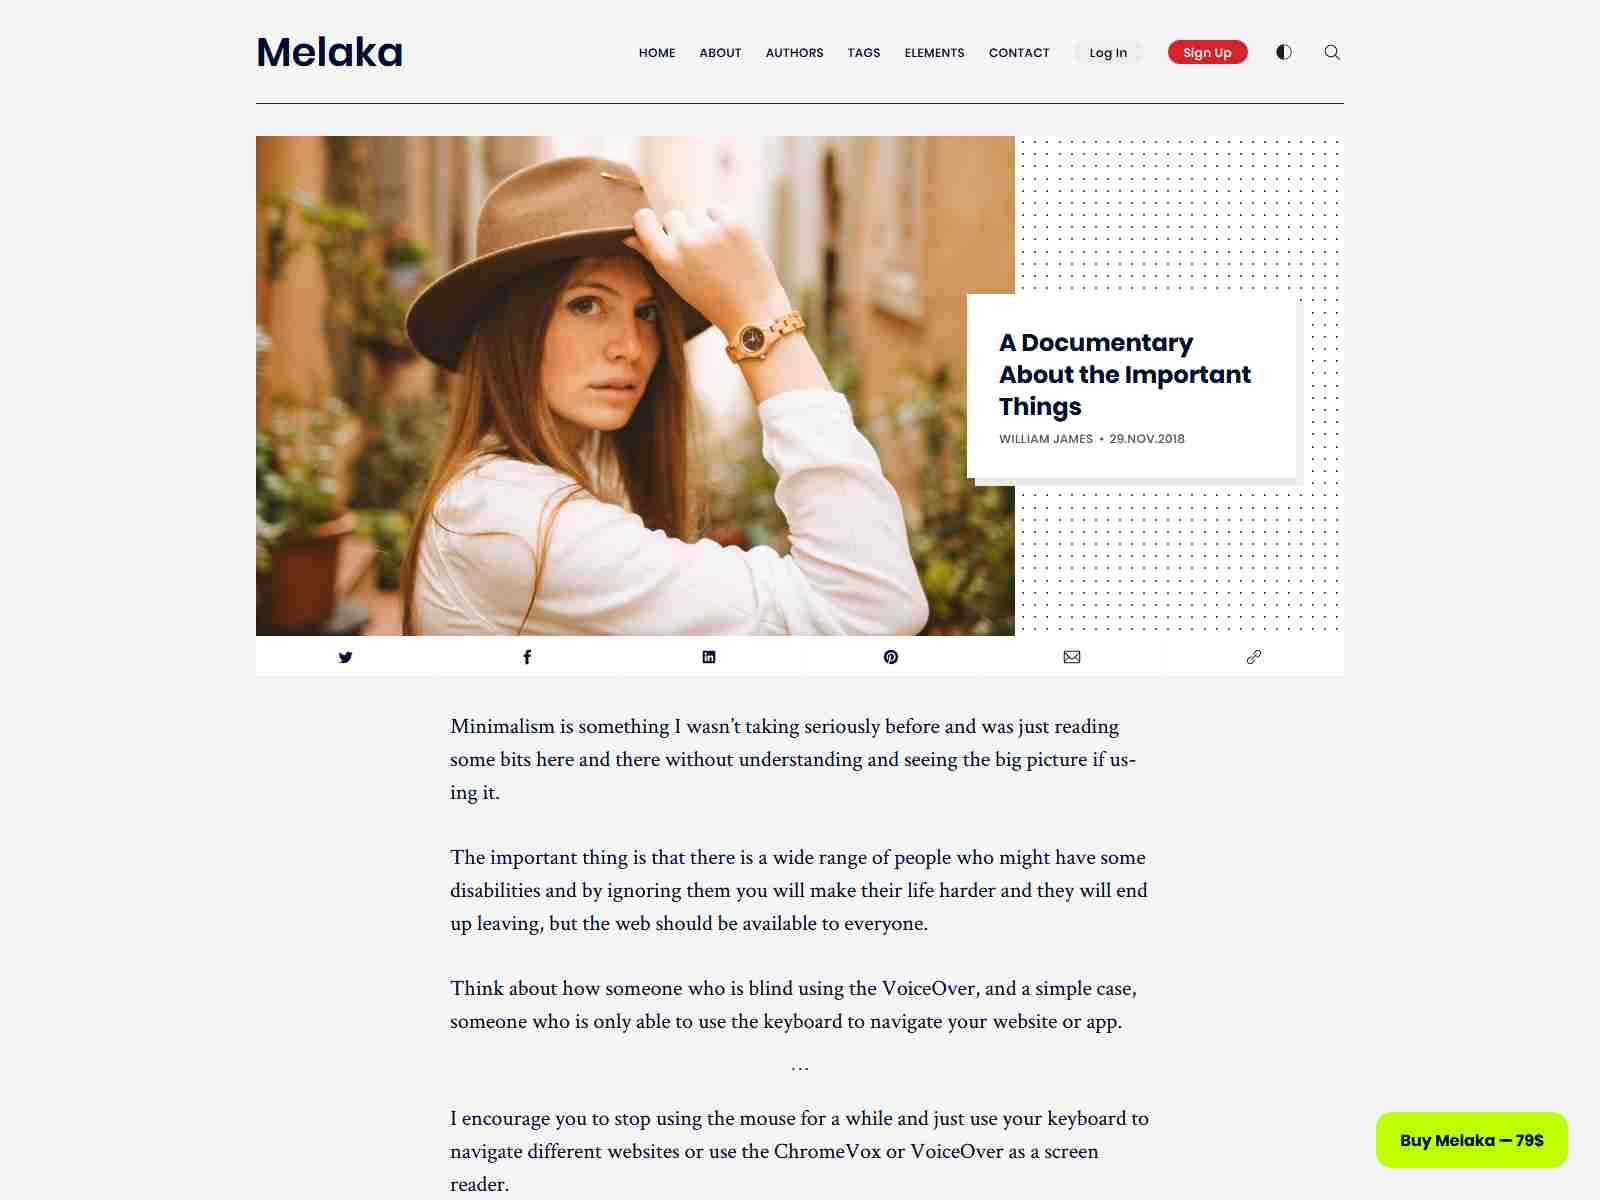 Melaka - Blog and Magazine Ghost 3.0 Theme